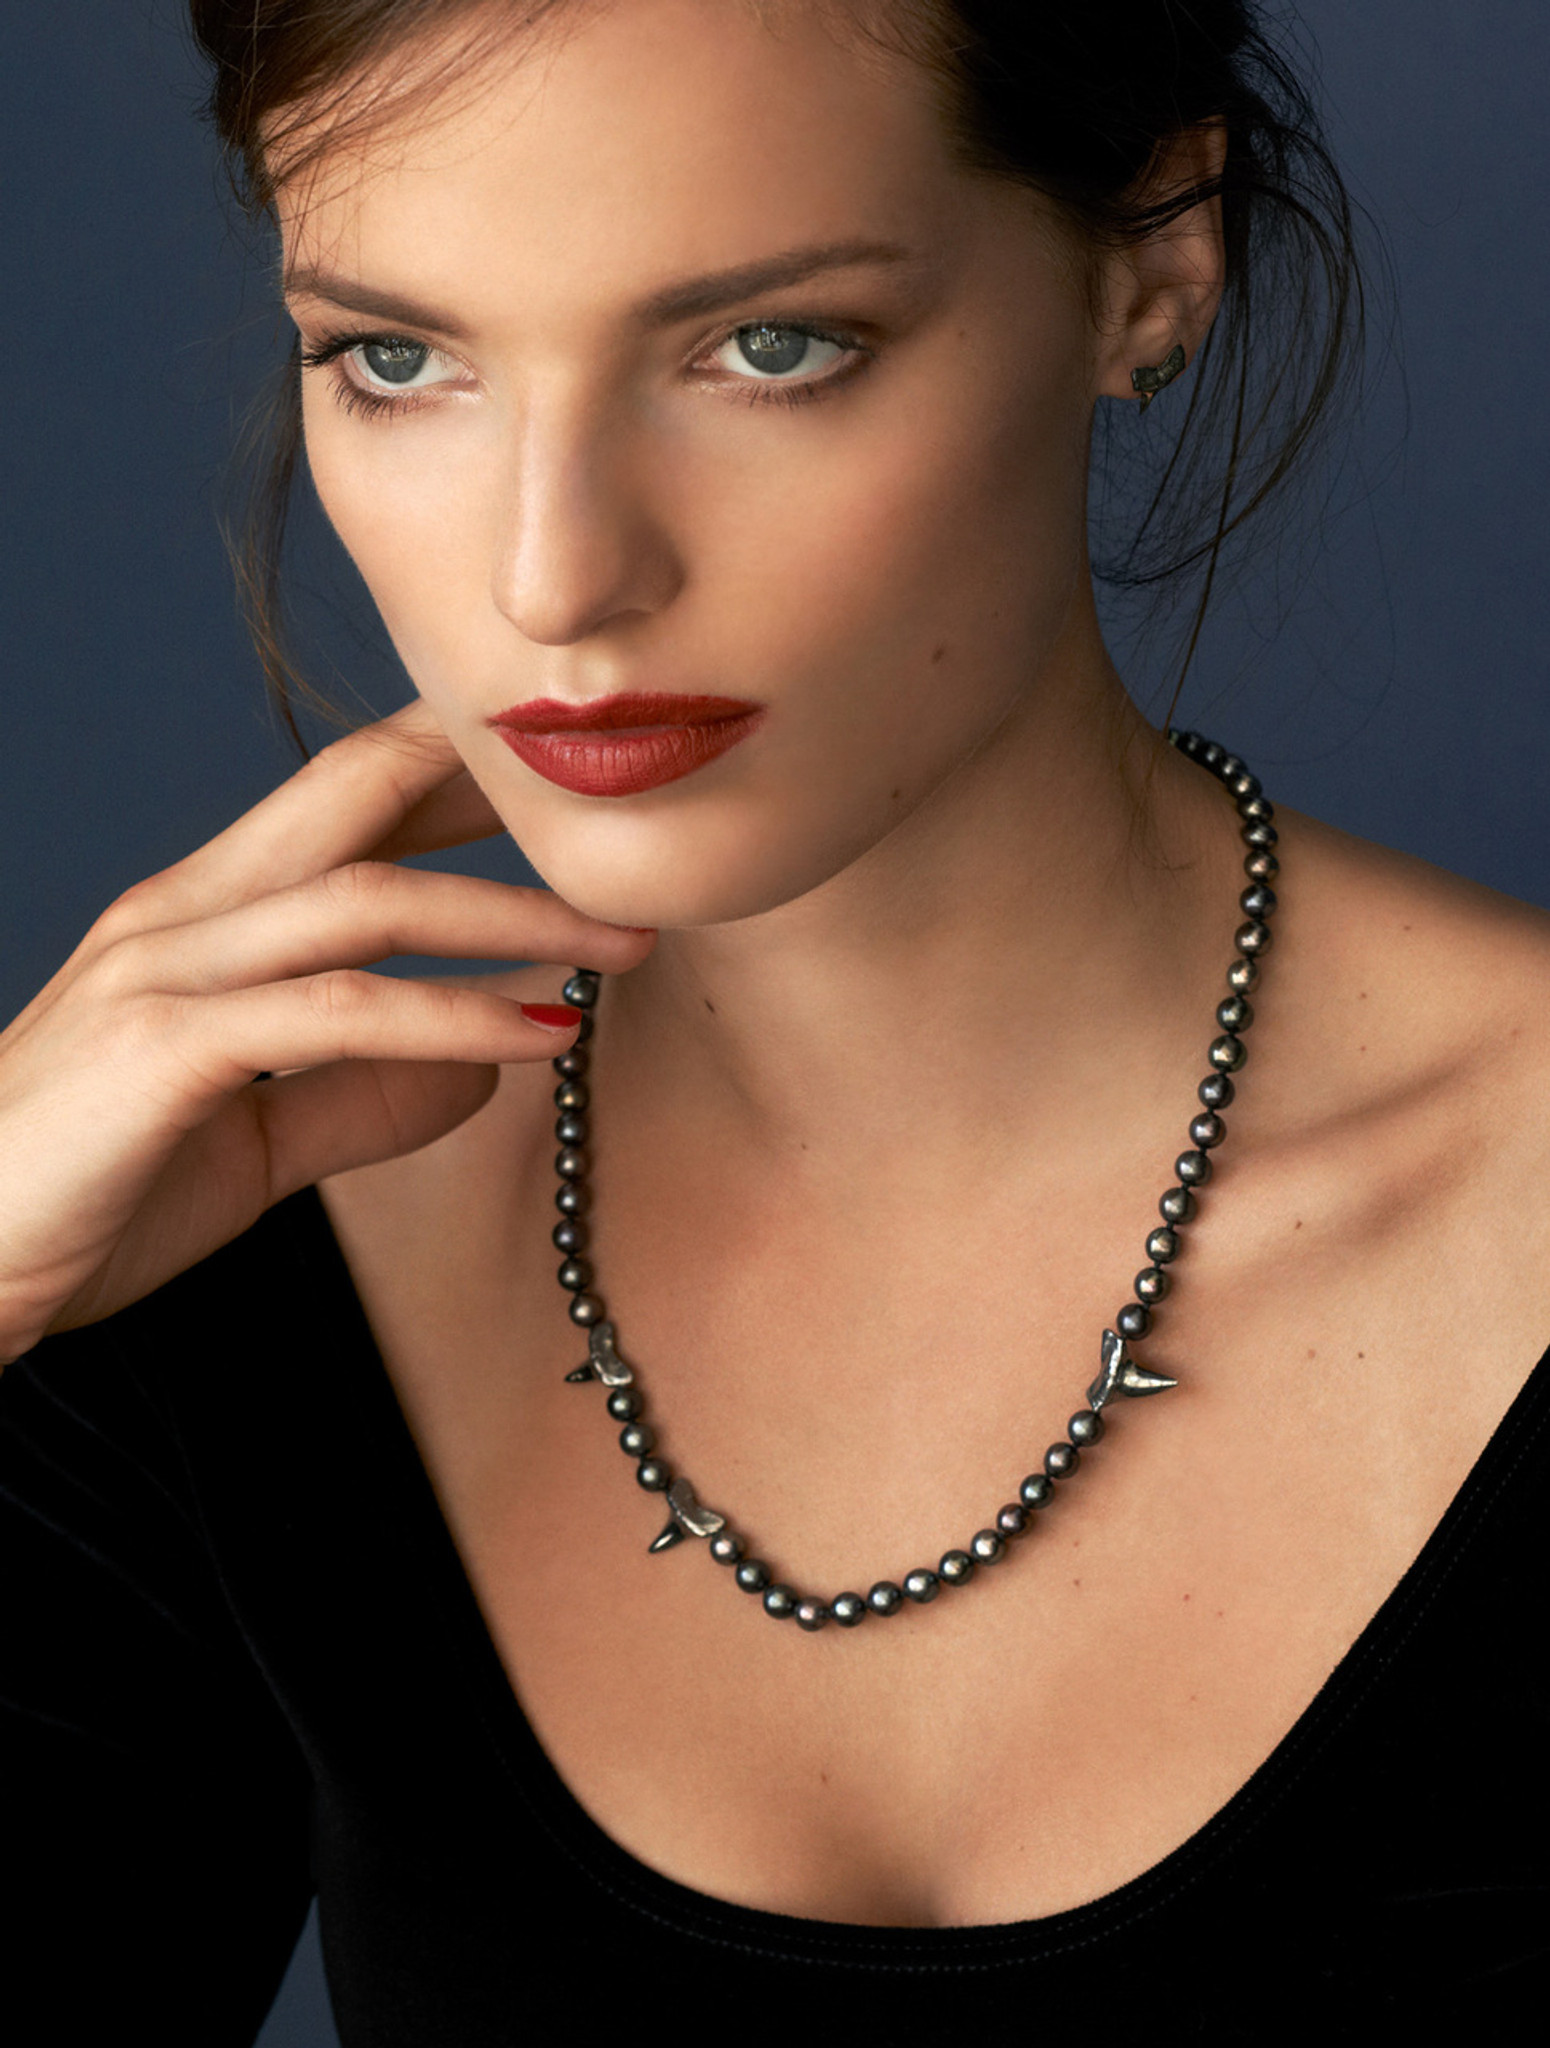 Model fit view of Black Peacock Cultured Pearl Necklace with Cruelty-Free Gold Black Rhodium Dipped Shark Teeth. by Fine Jewelry Designer Nektar De Stagni.